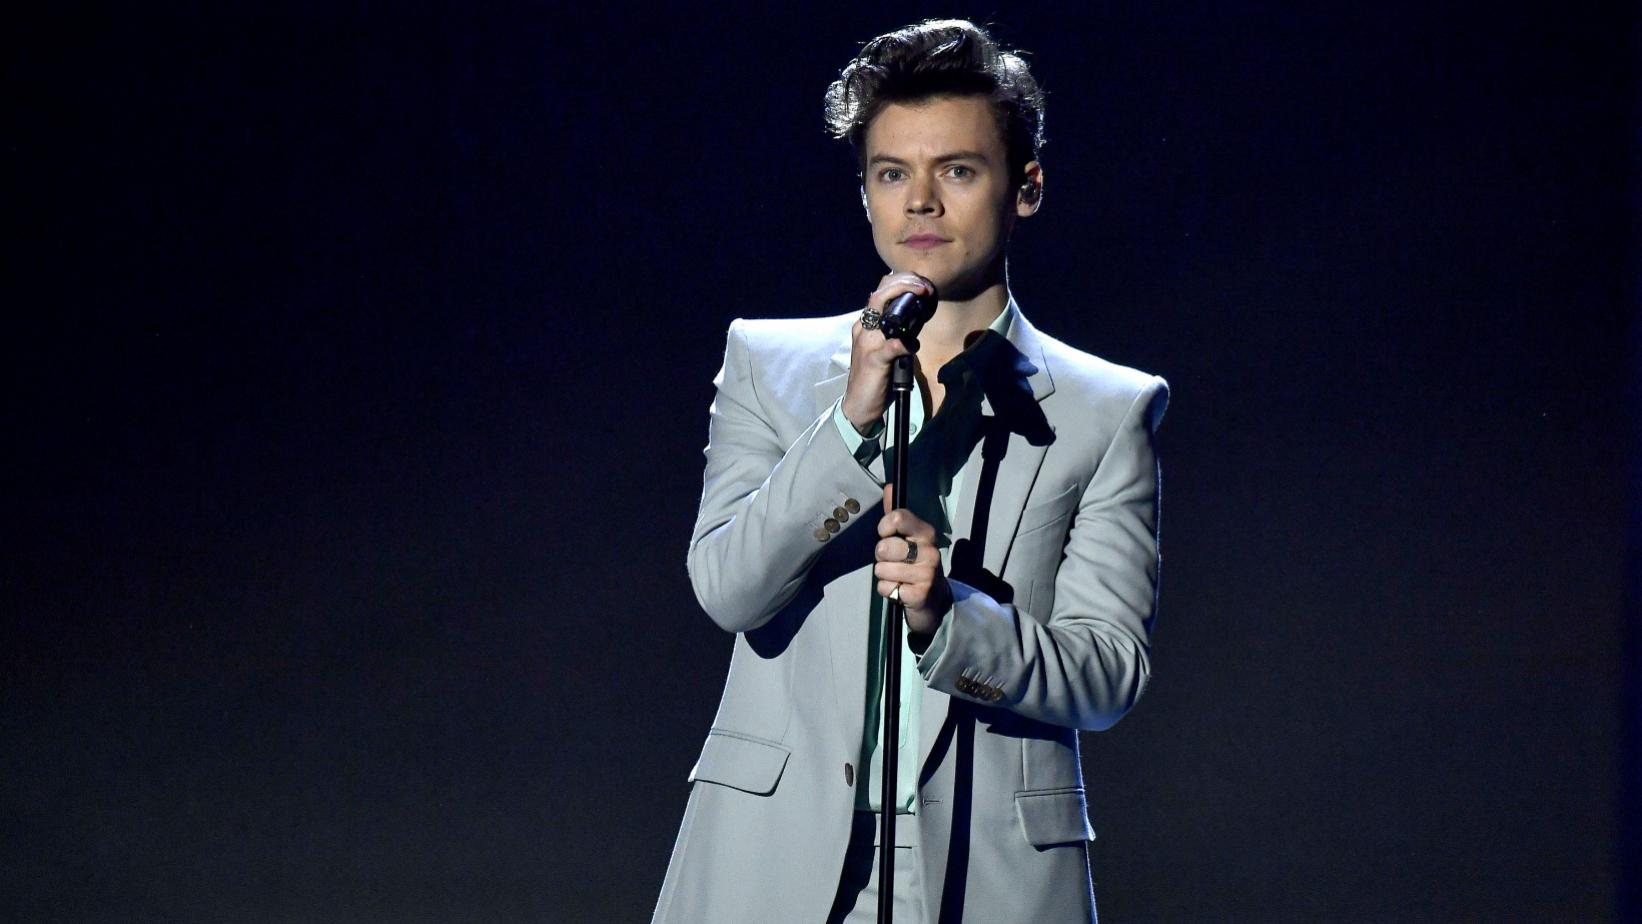 Harry Styles onstage in 2017